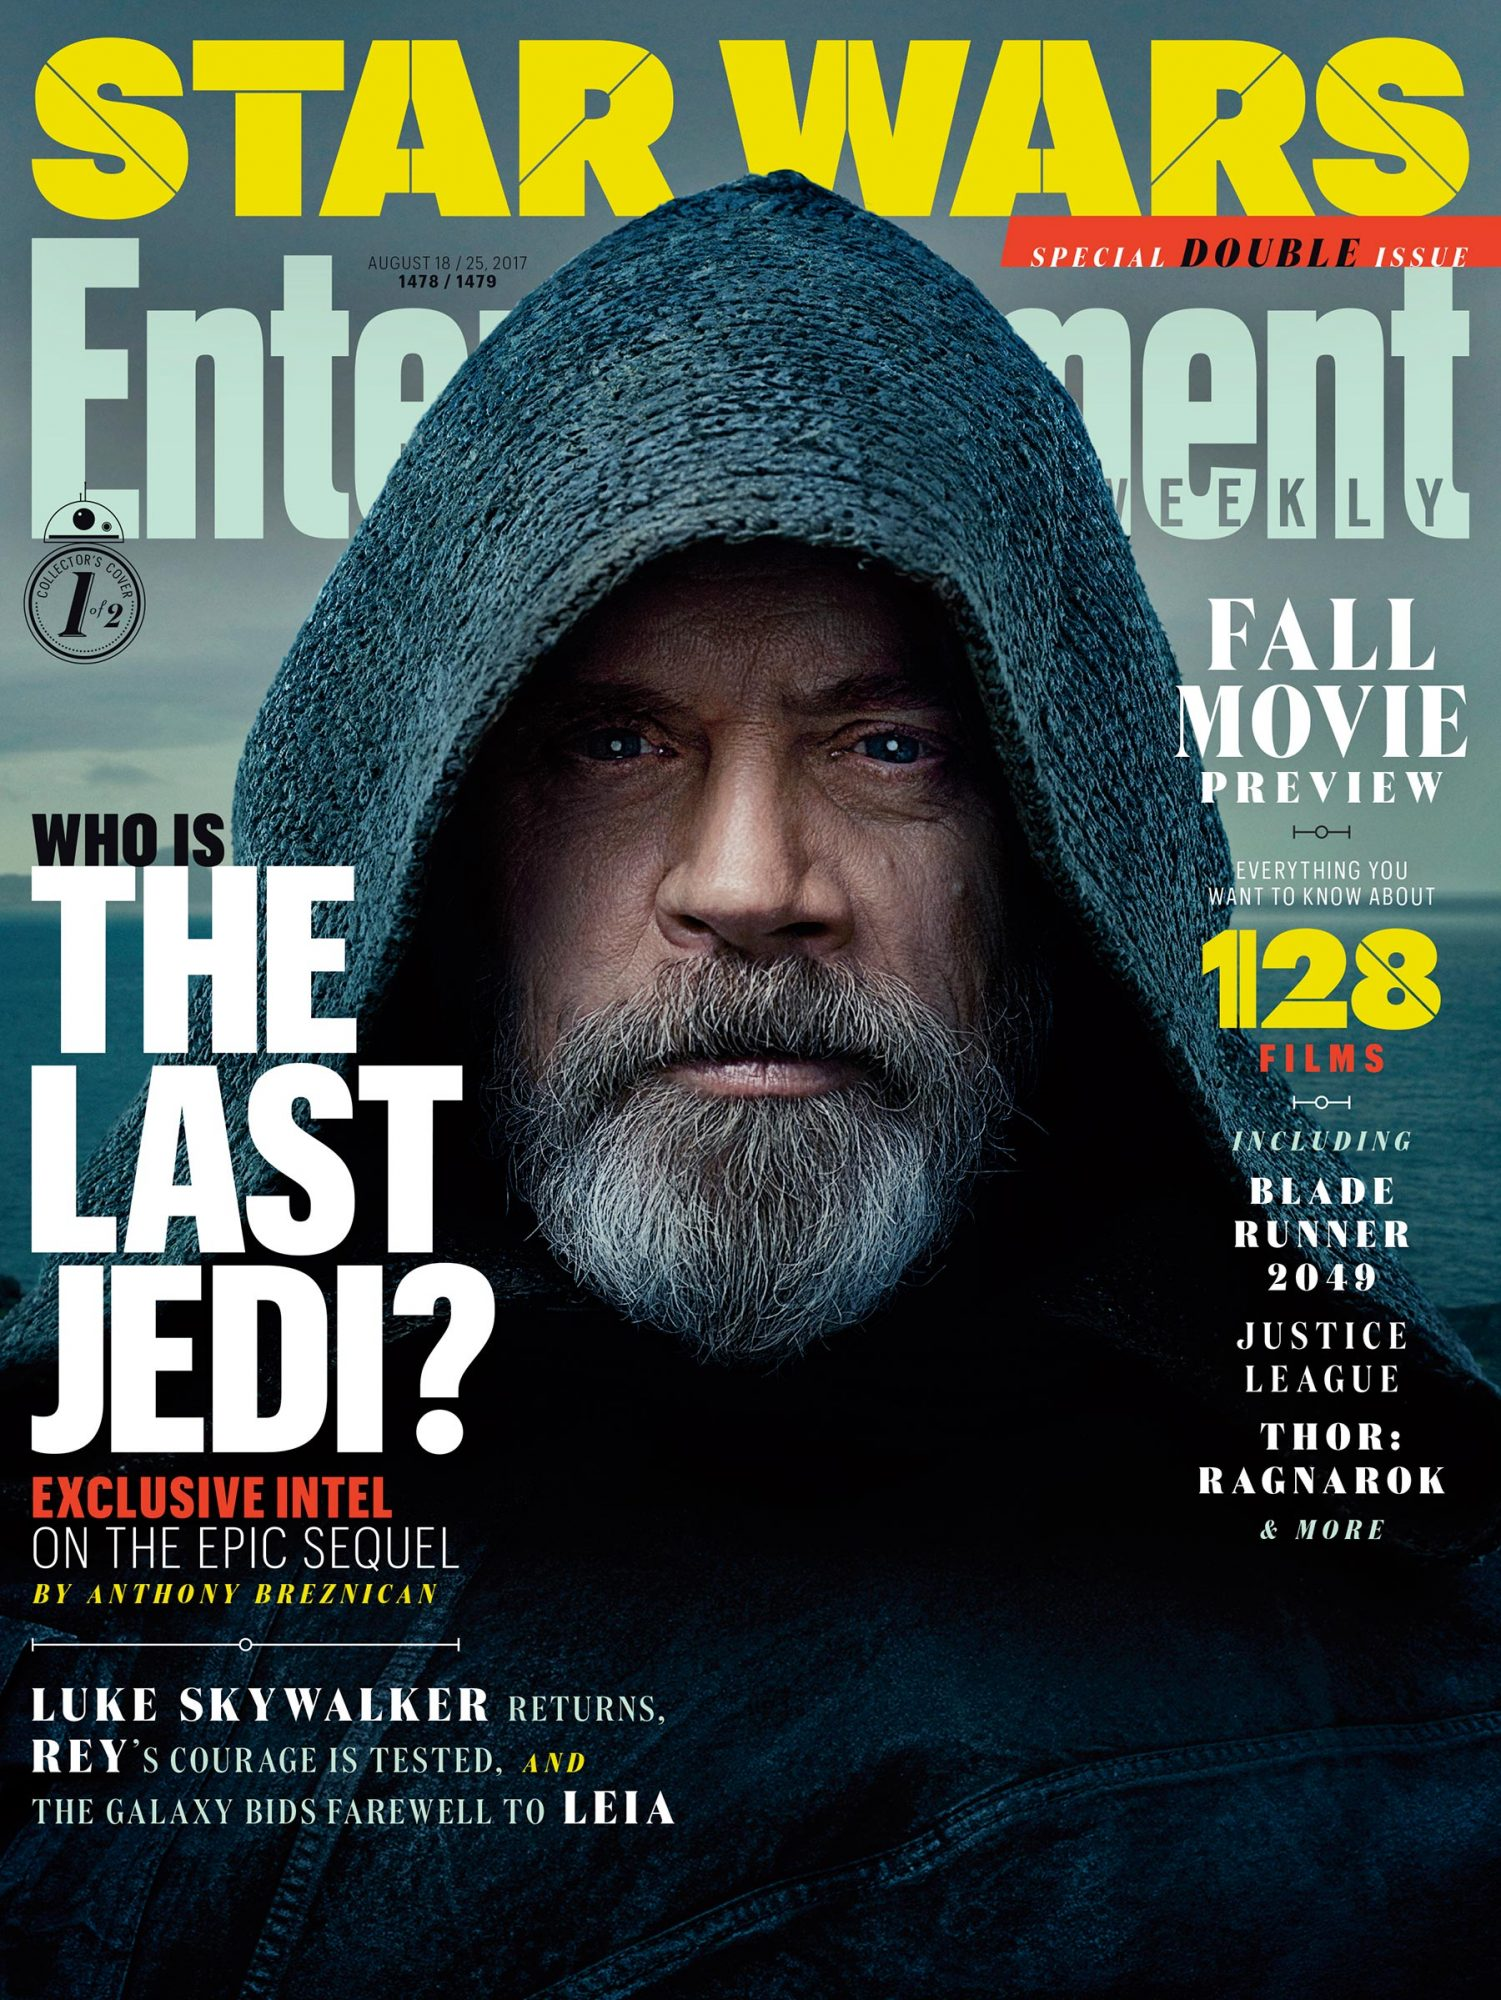 2017: Mark Hamill in Star Wars: The Last Jedi